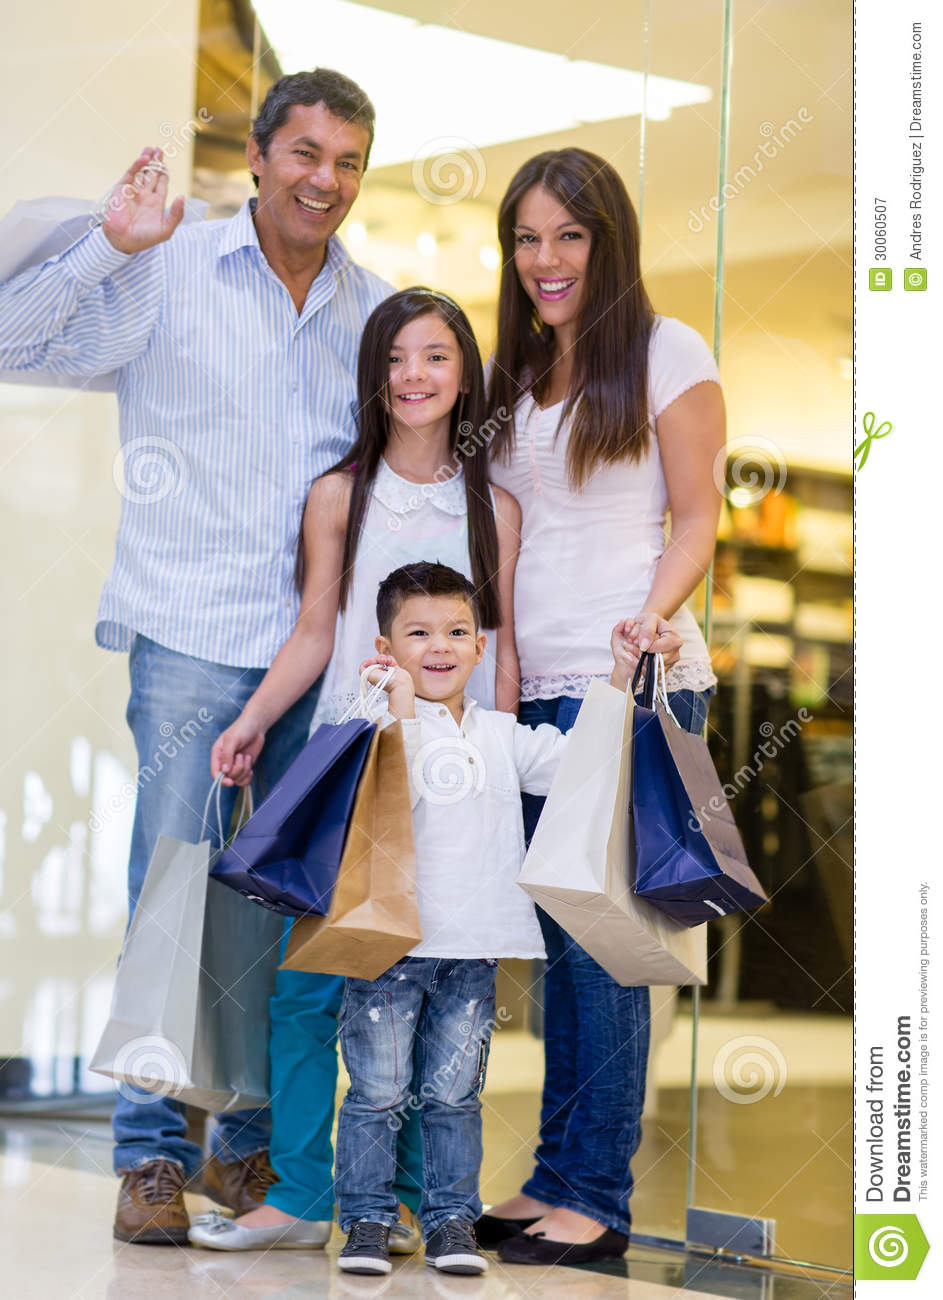 Vacation Couple Blog Happy Family Shopping Stock Image Image Of Retail